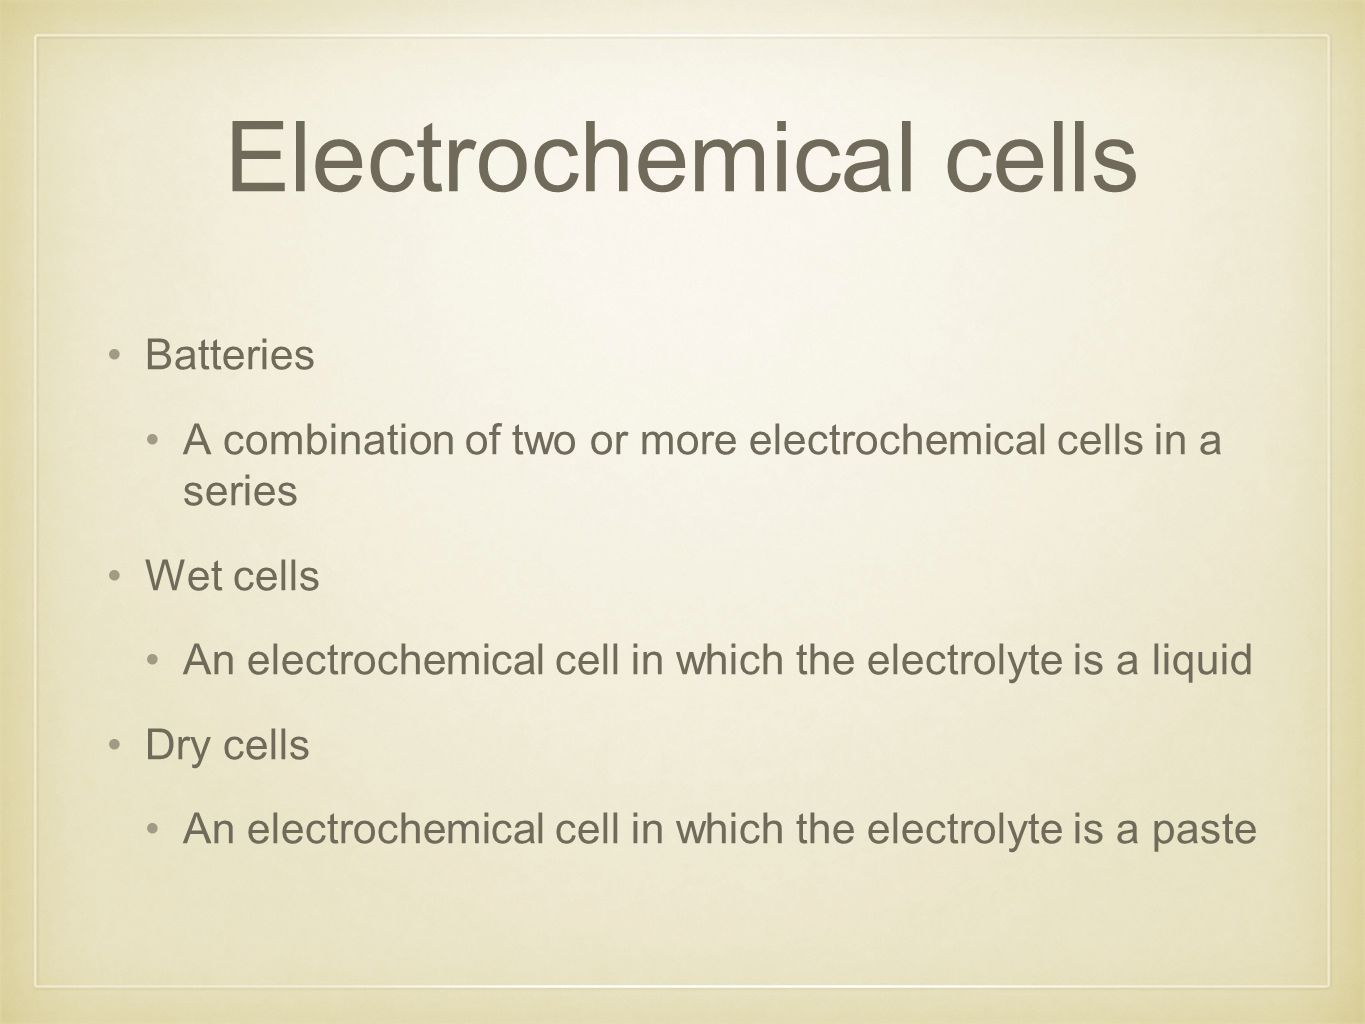 Electrochemical cells Batteries A combination of two or more electrochemical cells in a series Wet cells An electrochemical cell in which the electrolyte is a liquid Dry cells An electrochemical cell in which the electrolyte is a paste